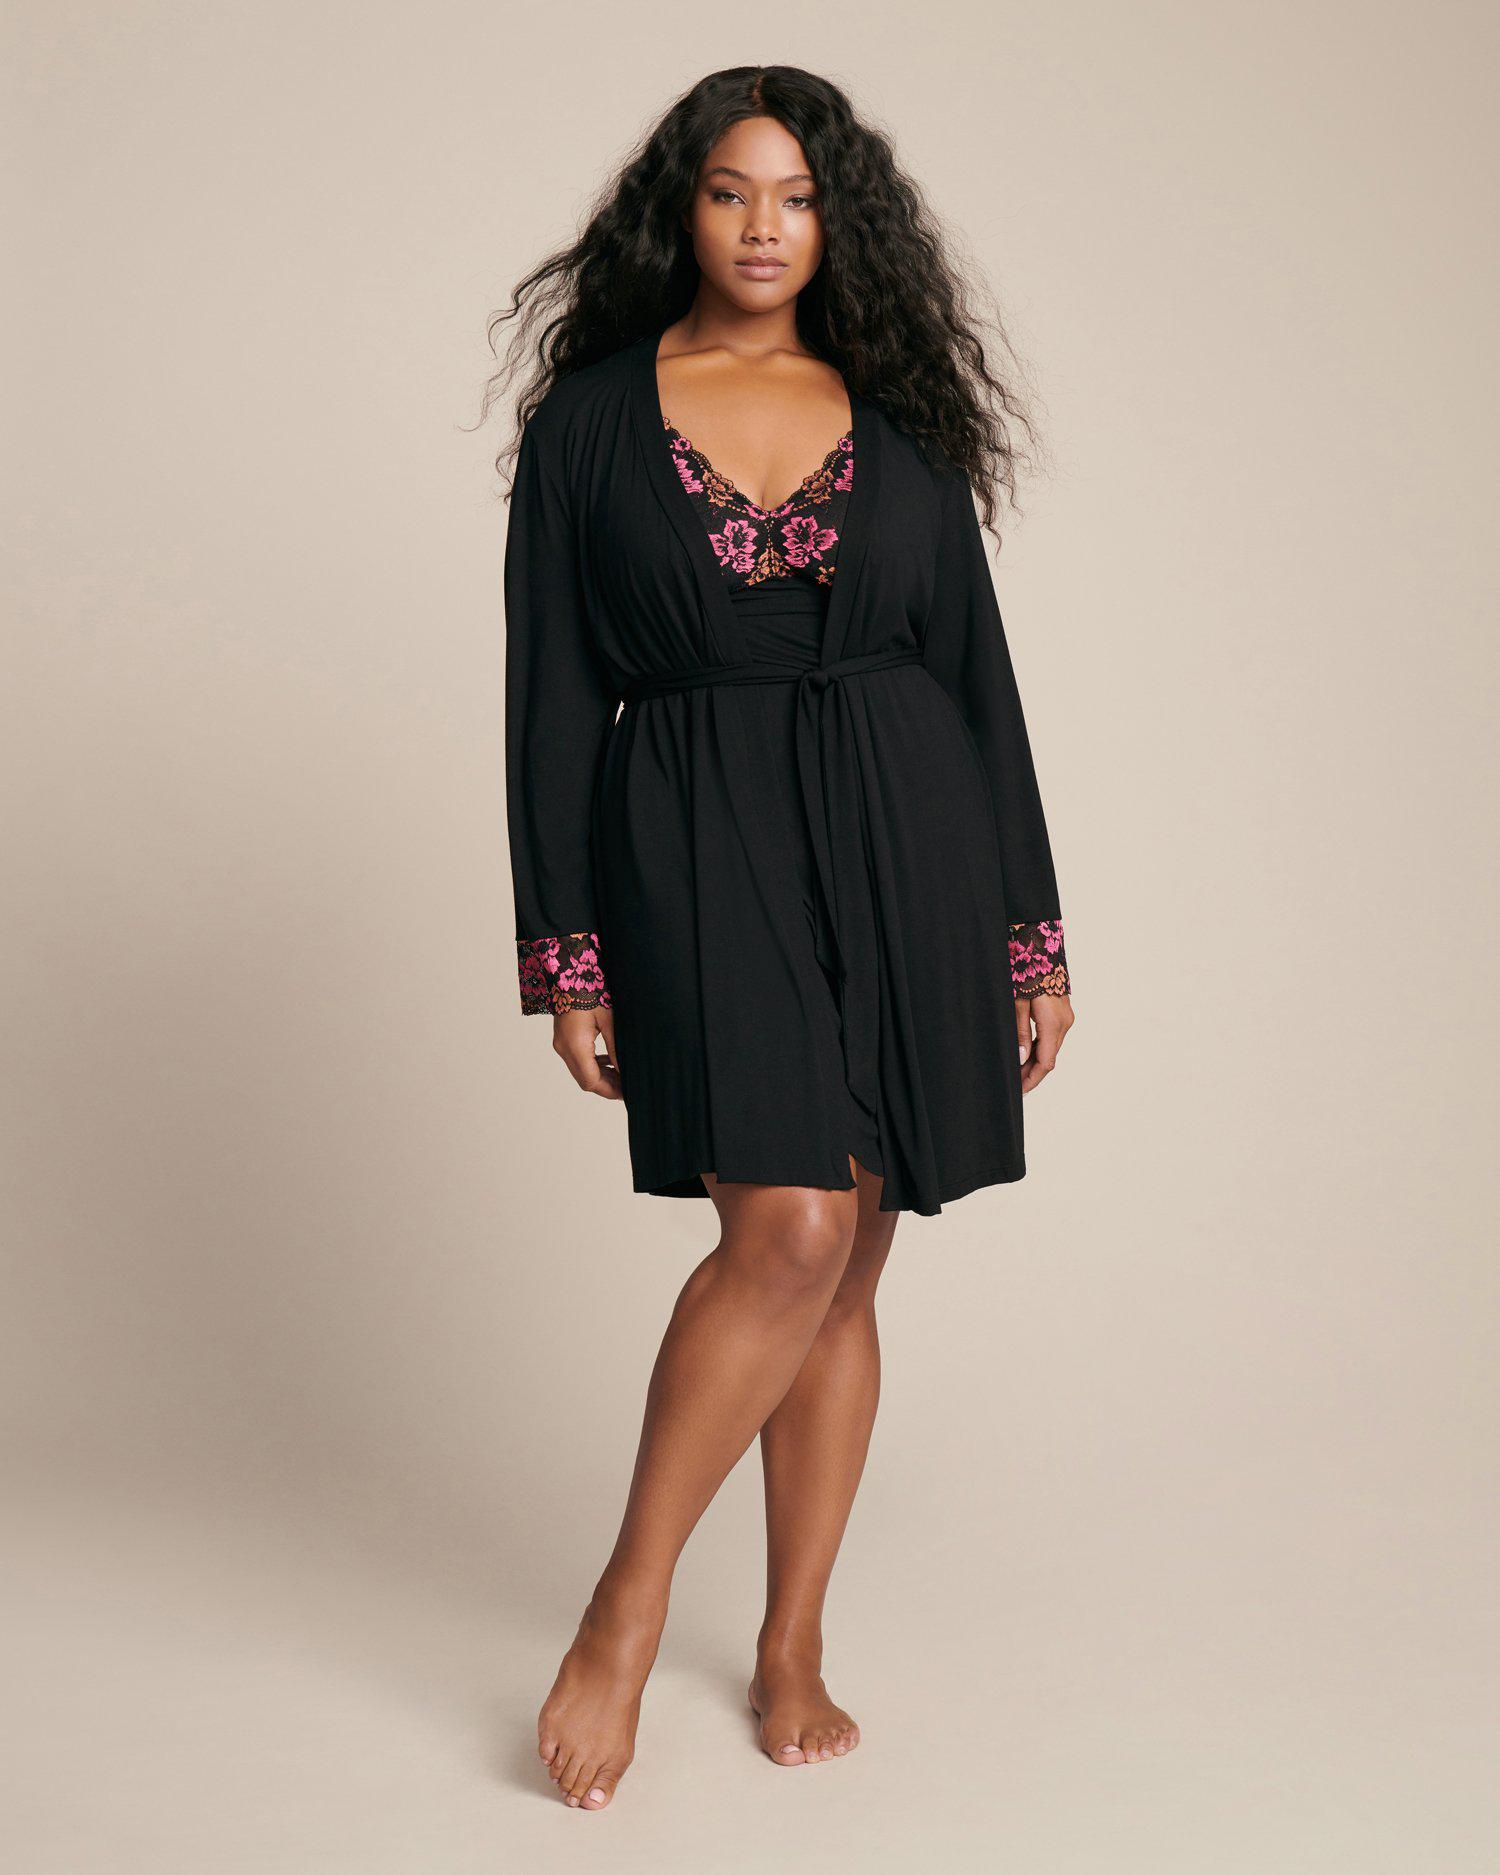 Lyst - Cosabella Savona Extended Robe in Black aa8e4b507